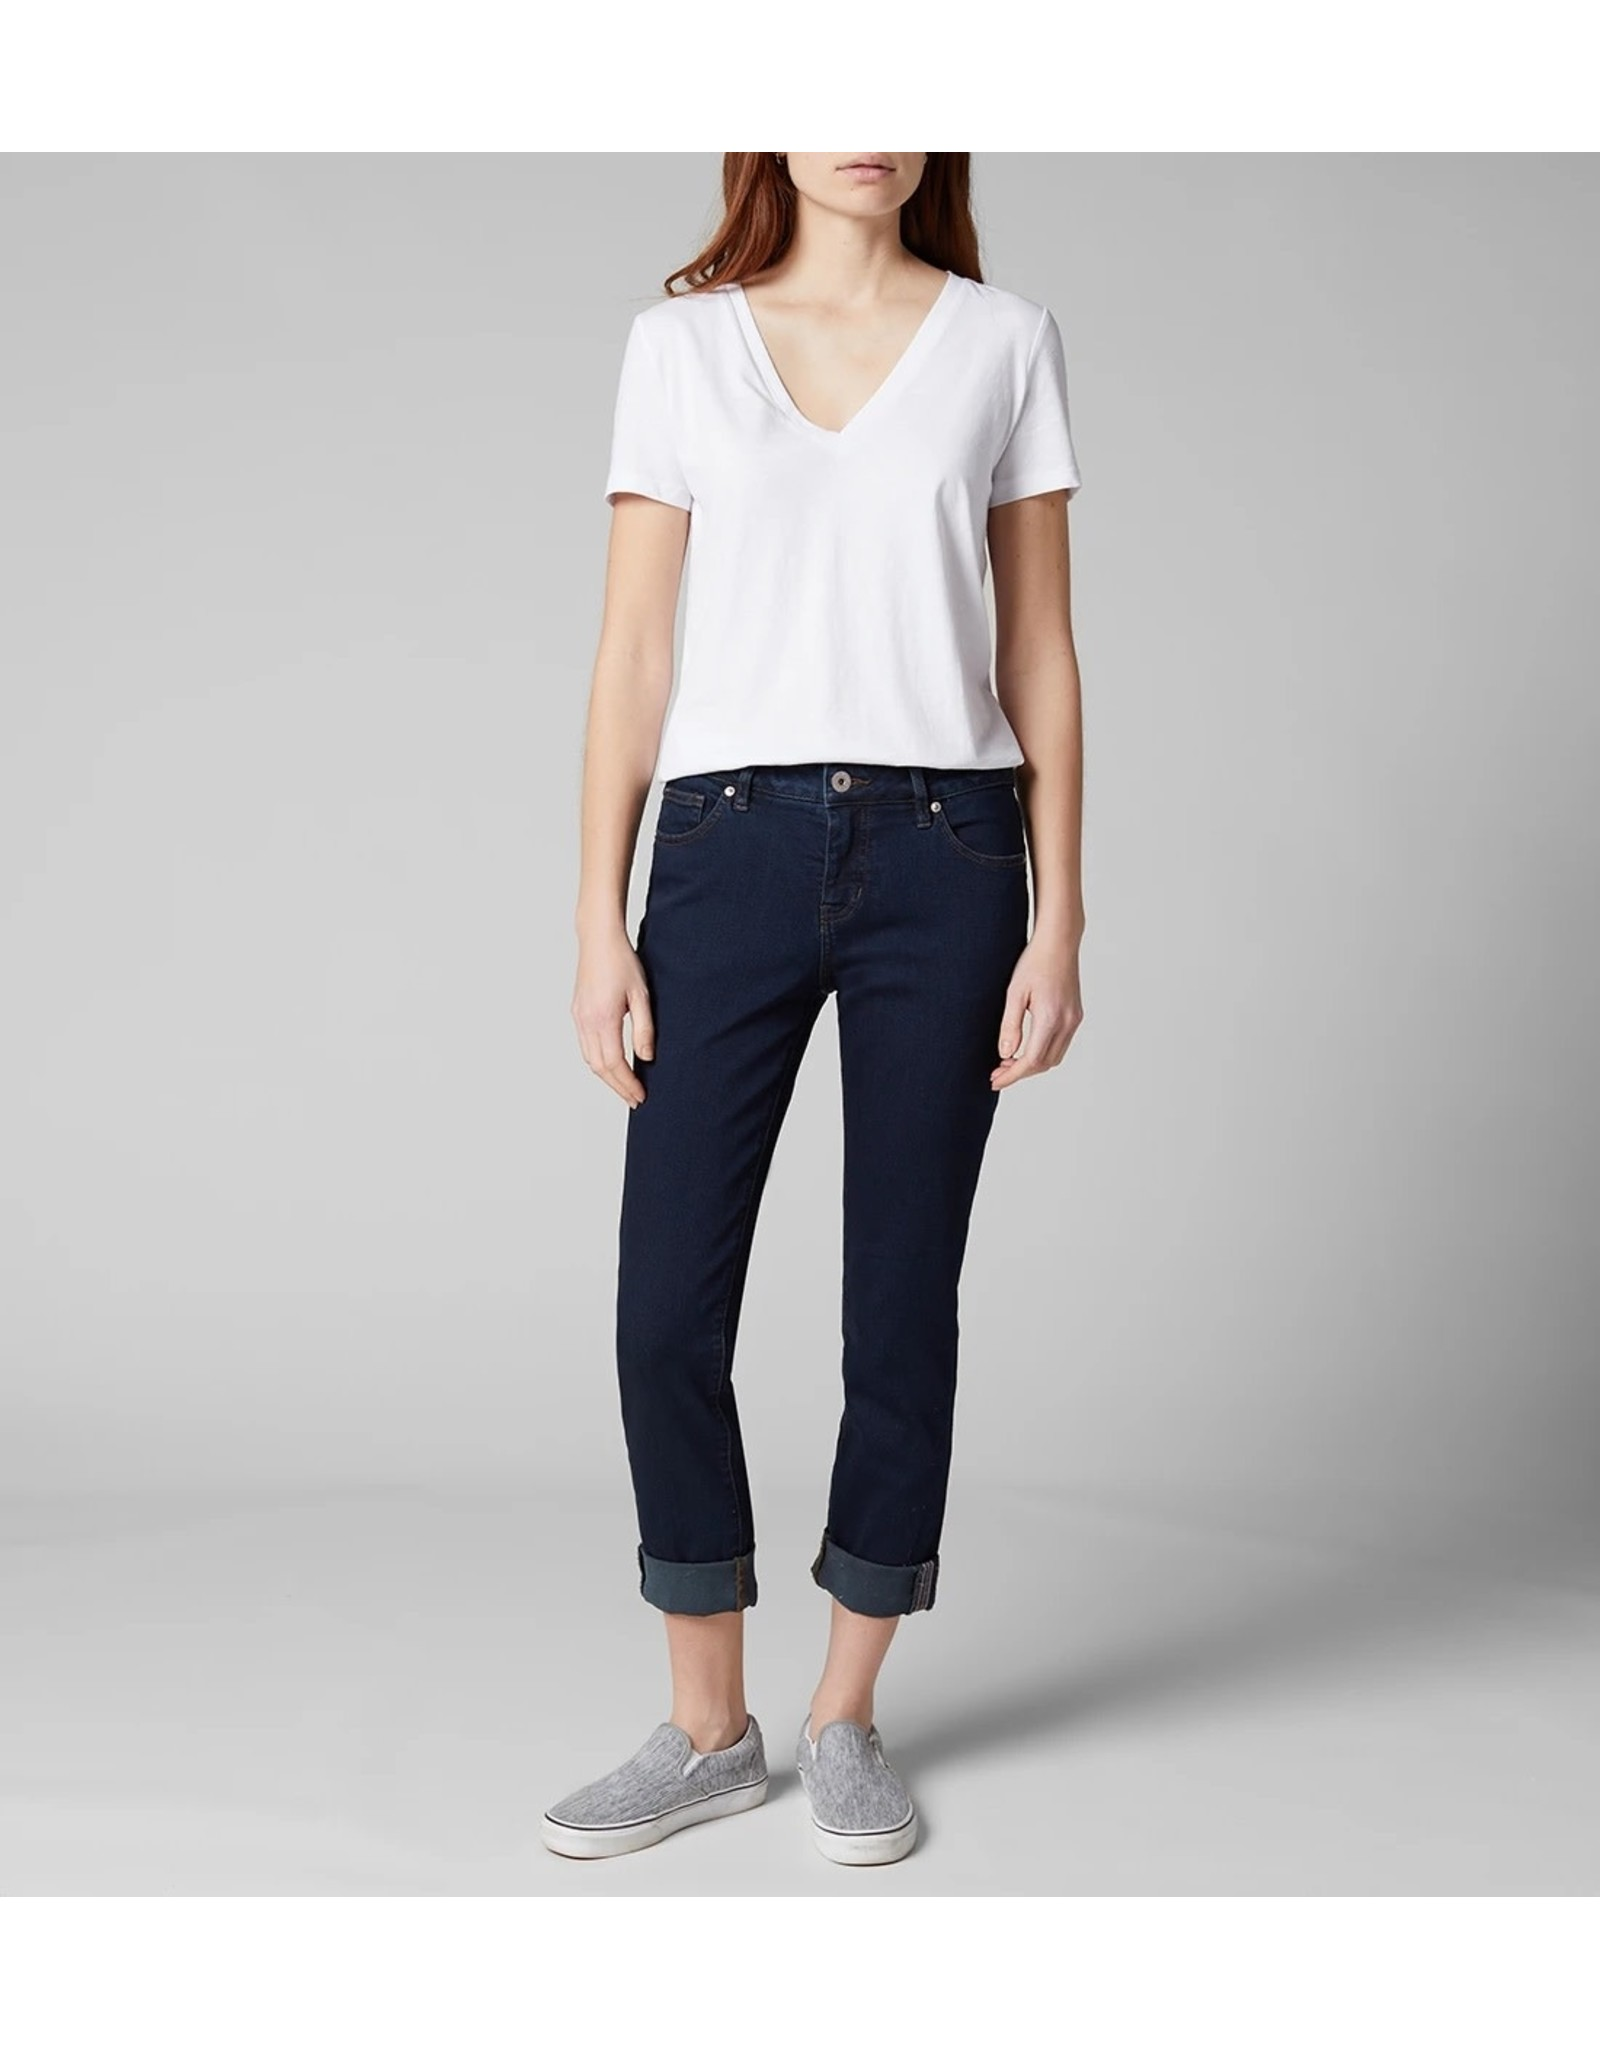 Jag Carter Mid Rise Girlfriend Jeans